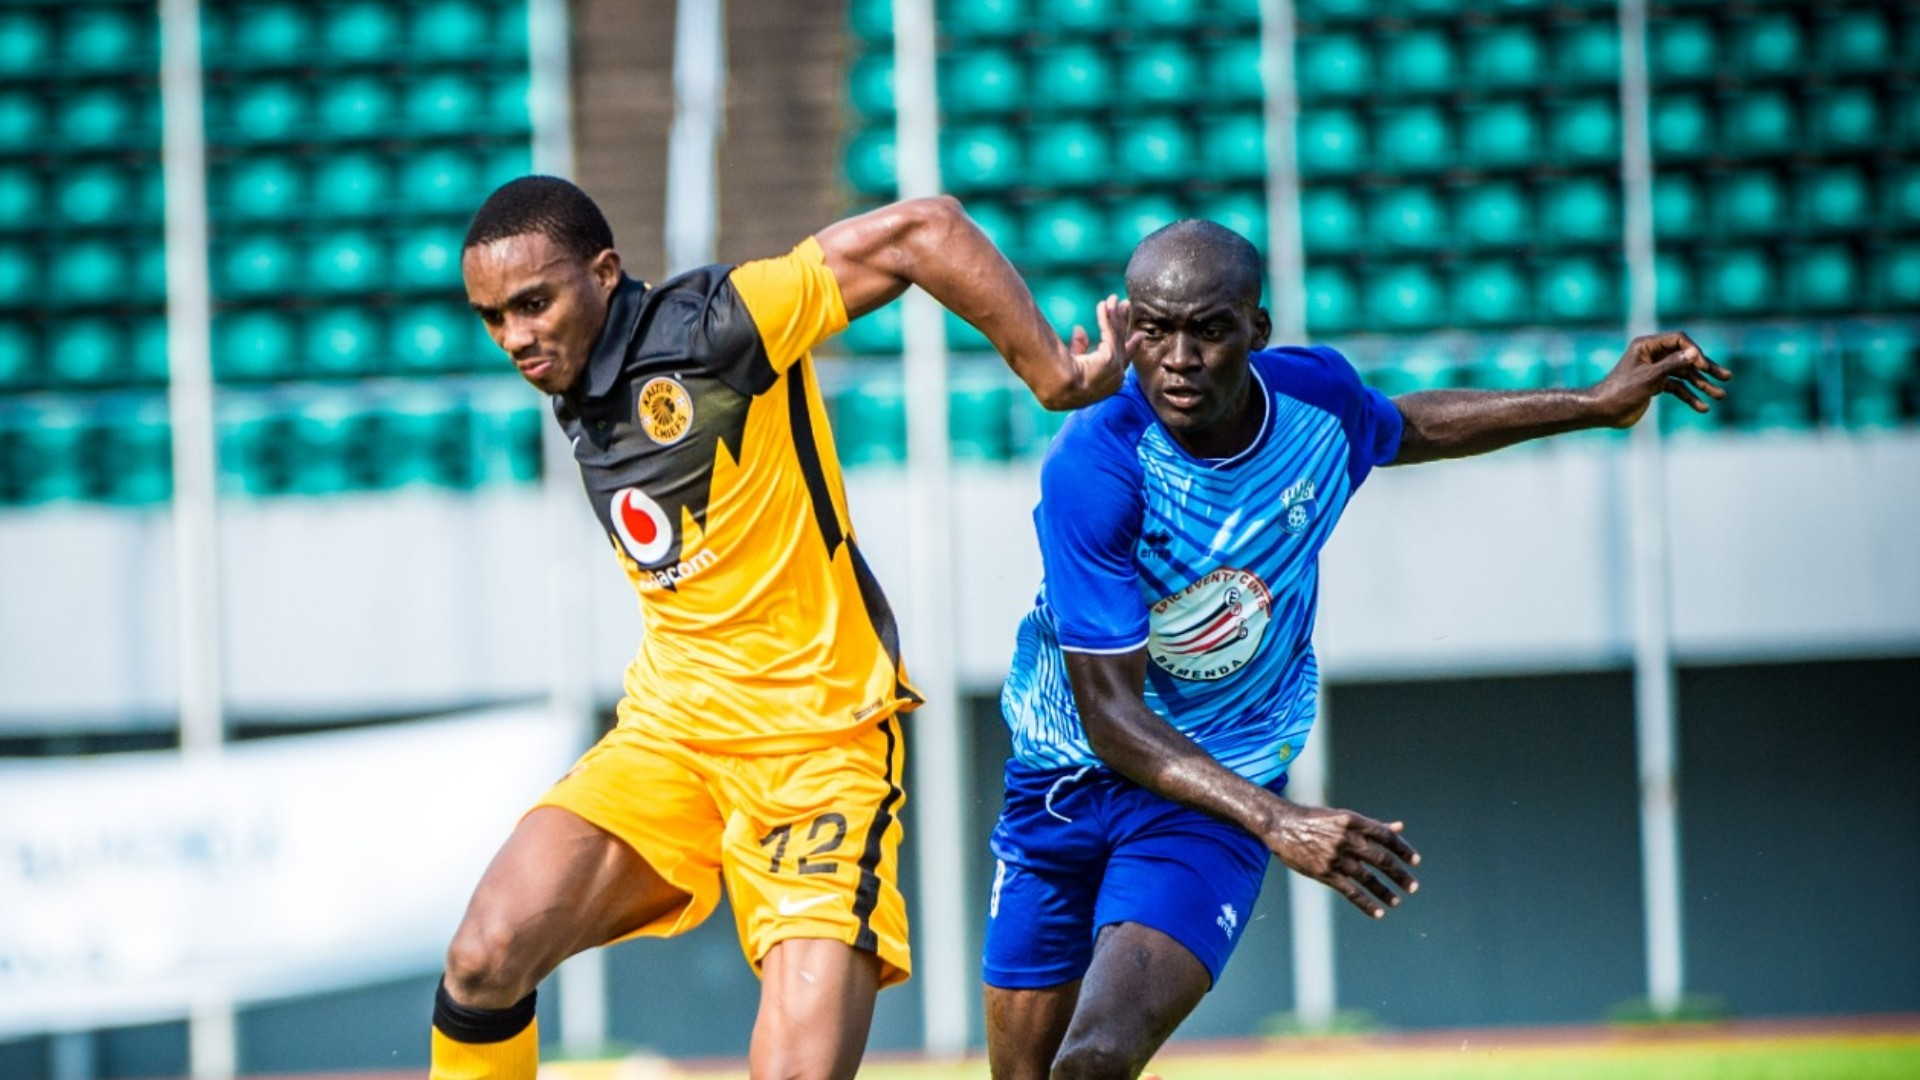 Kaizer Chiefs' Caf Champions League match against PWD Bamenda kick-off time shifted